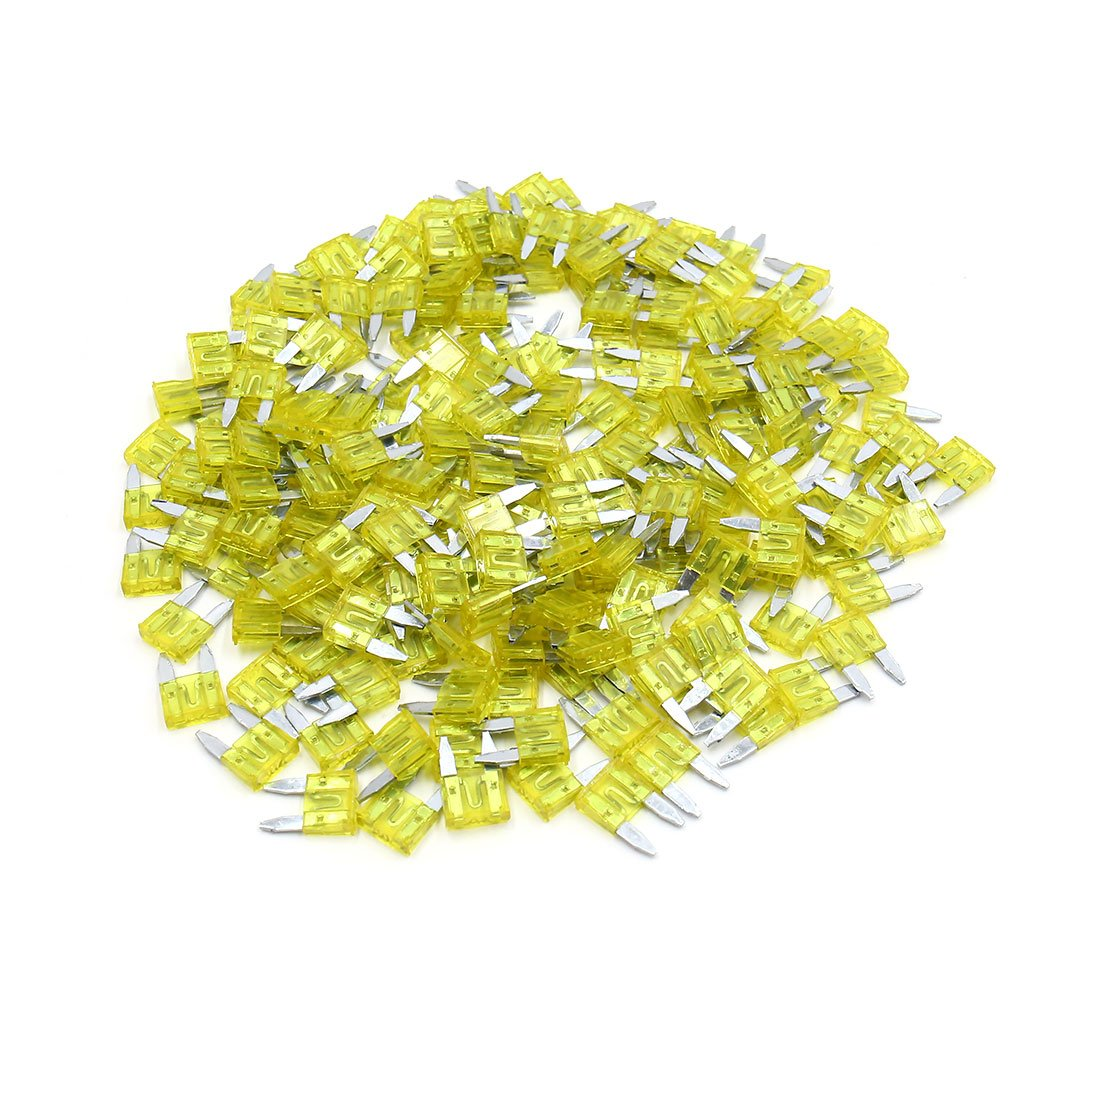 uxcell 200pcs 20A Yellow Plastic Case Small Blade Style Fuse for Car Vehicle Motorcycle